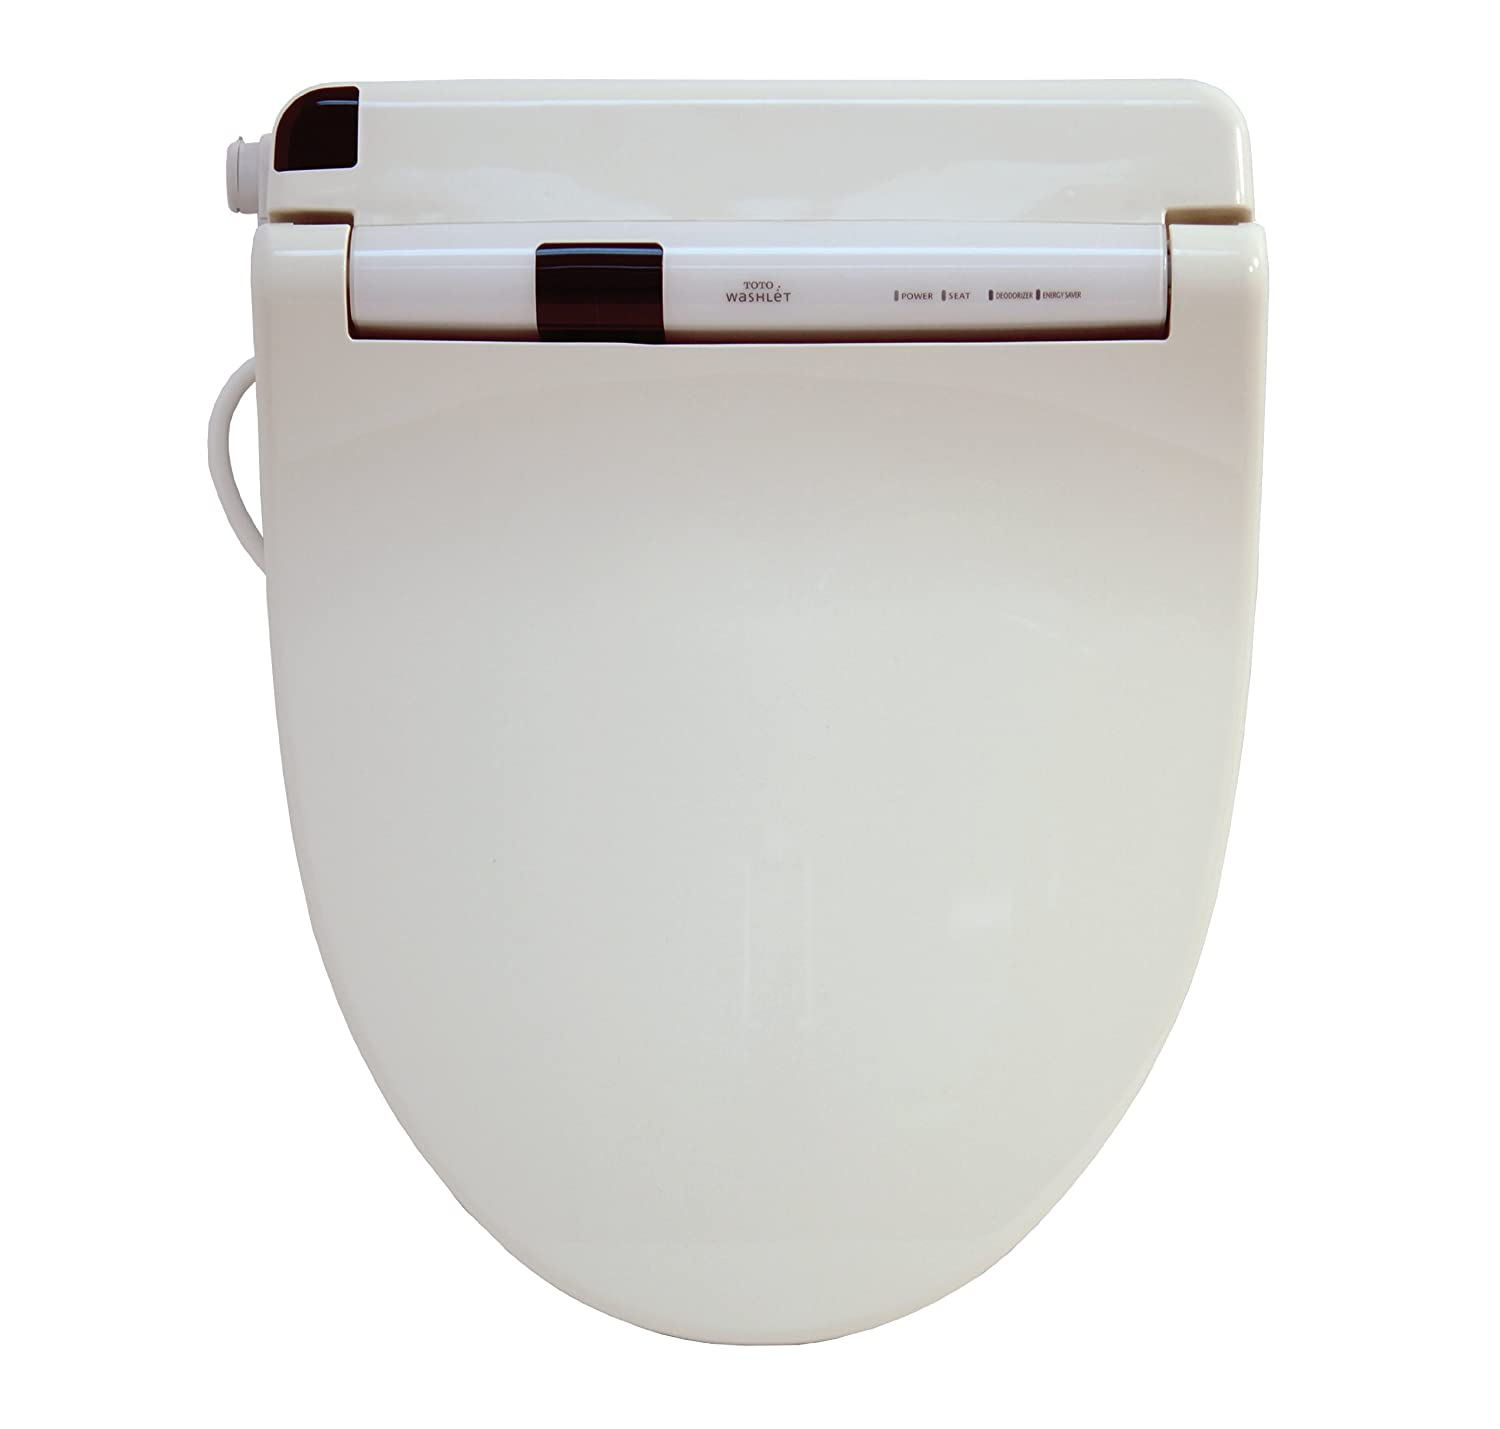 TOTO SW563T695-11 Washlet S400 Round Front Toilet Seat for G-Max ...